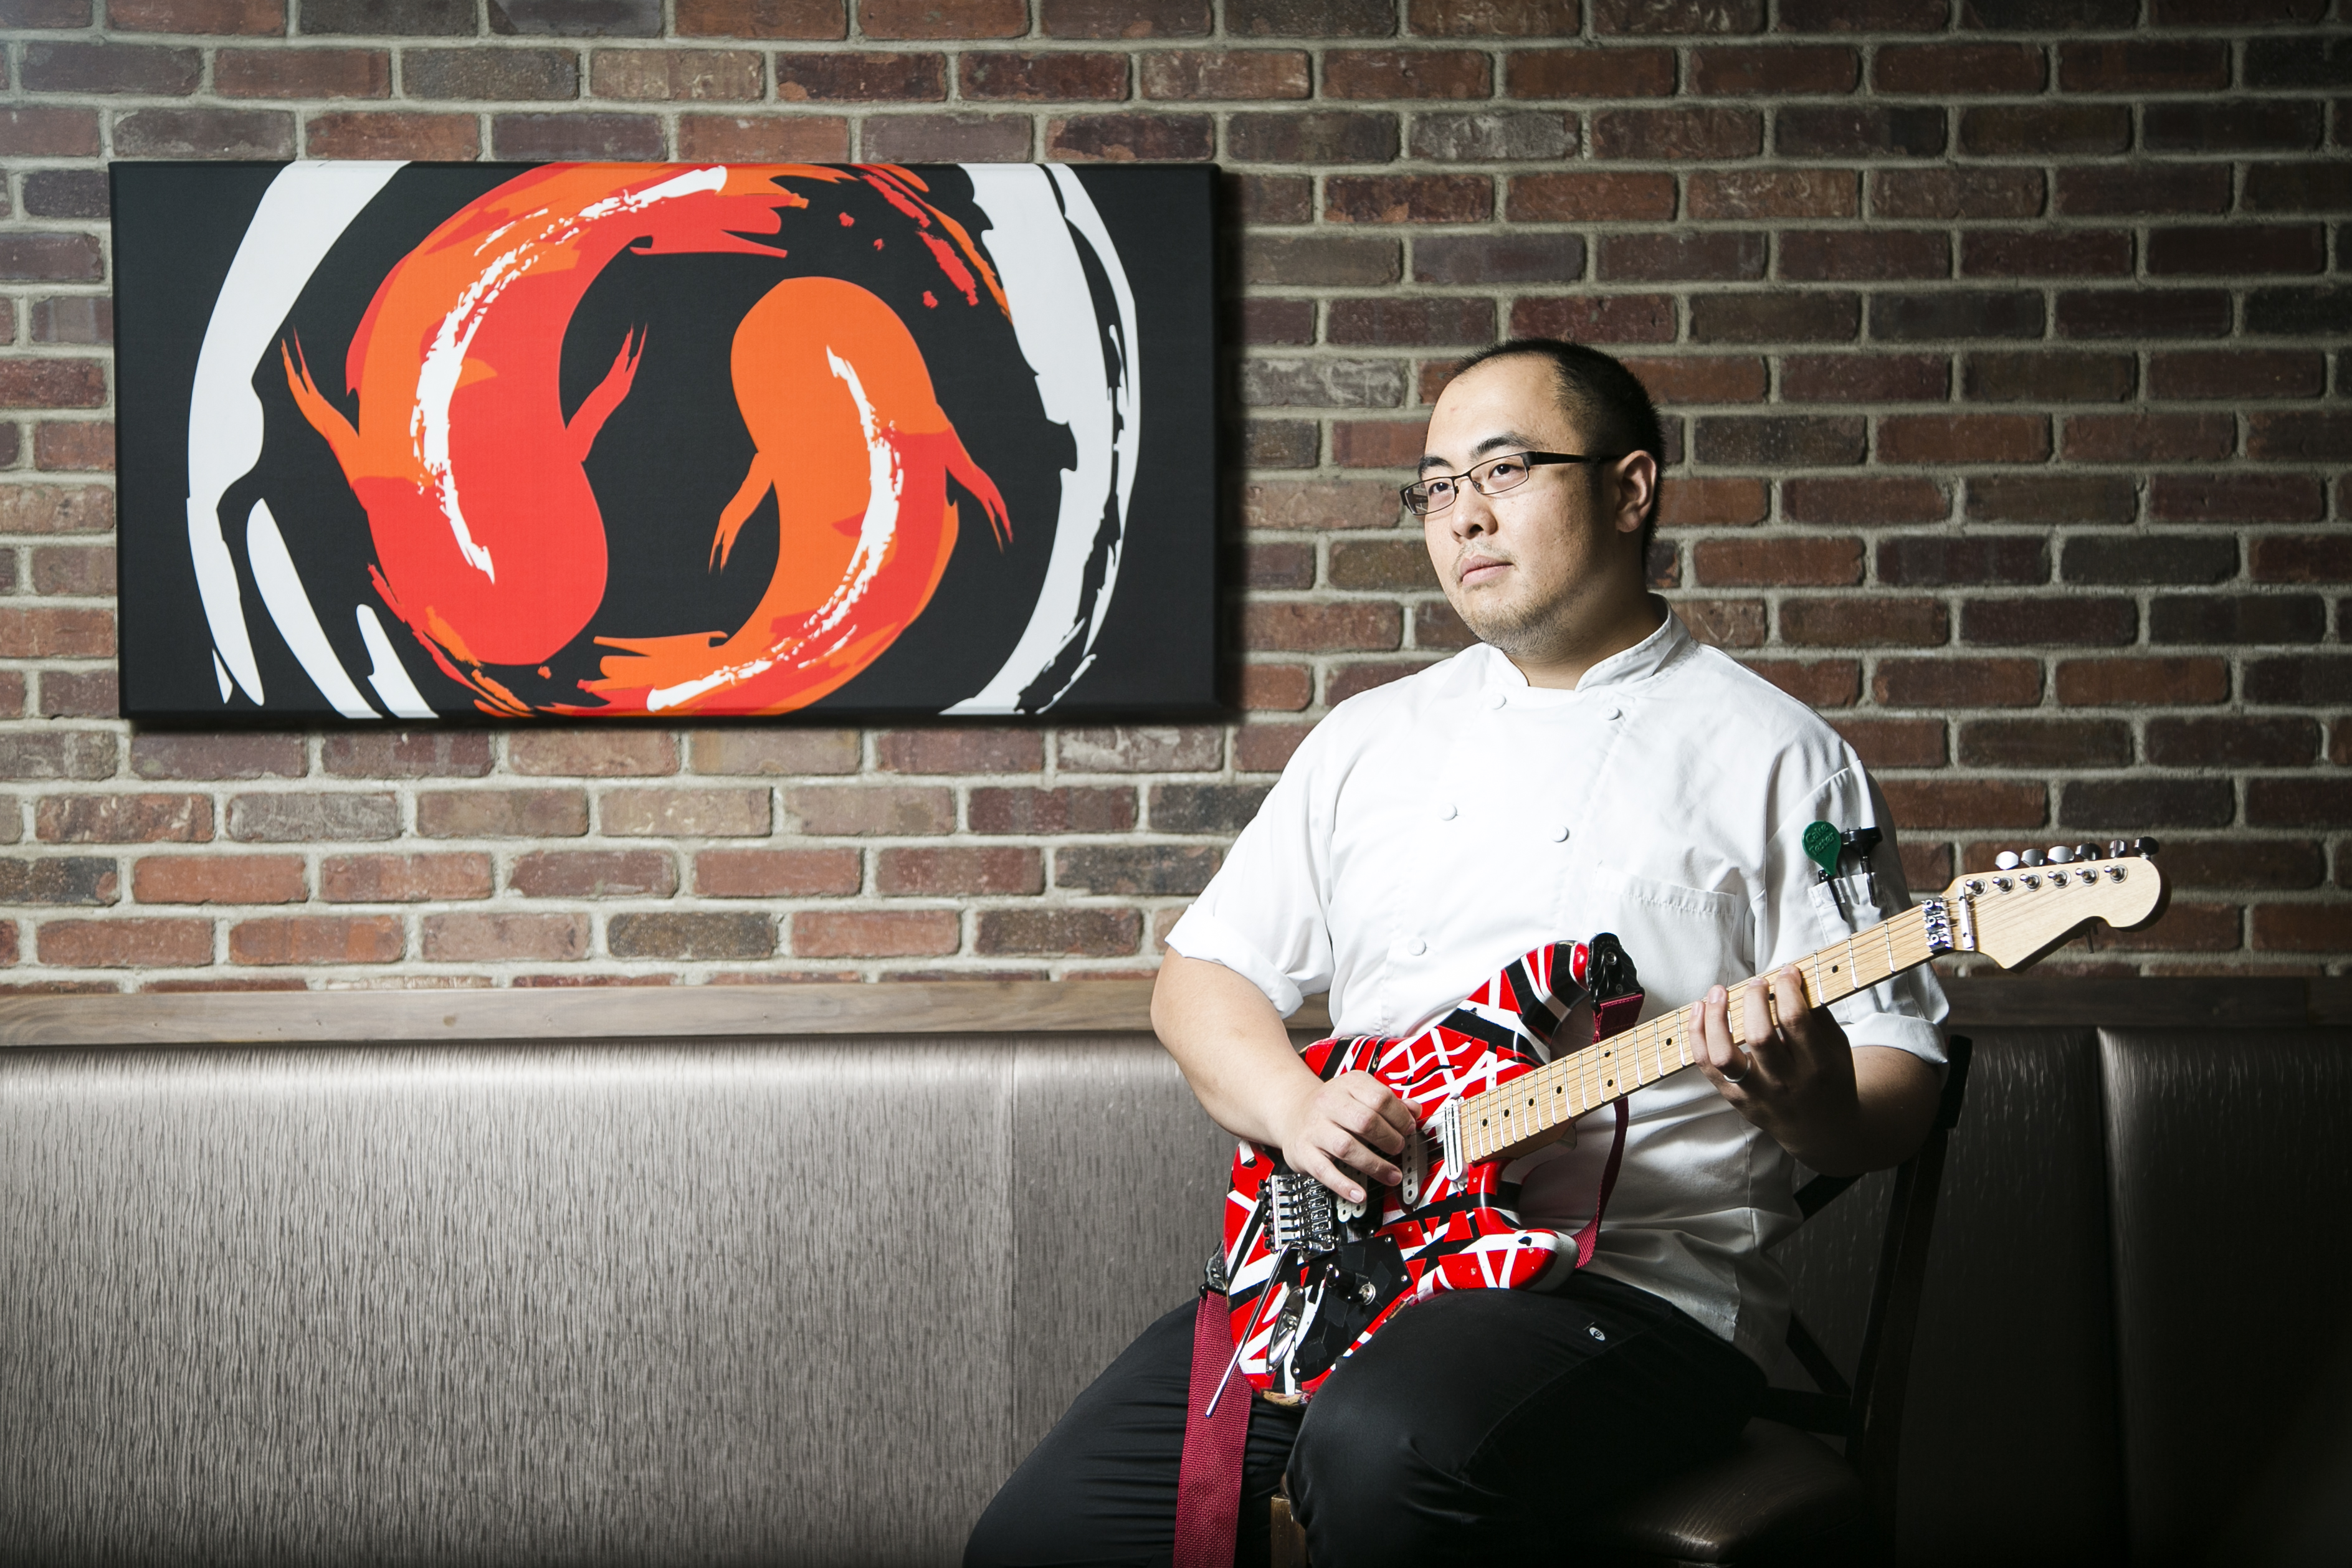 Chef Brian Tsao jamming out. (Samira Bouaou/Epoch Times)